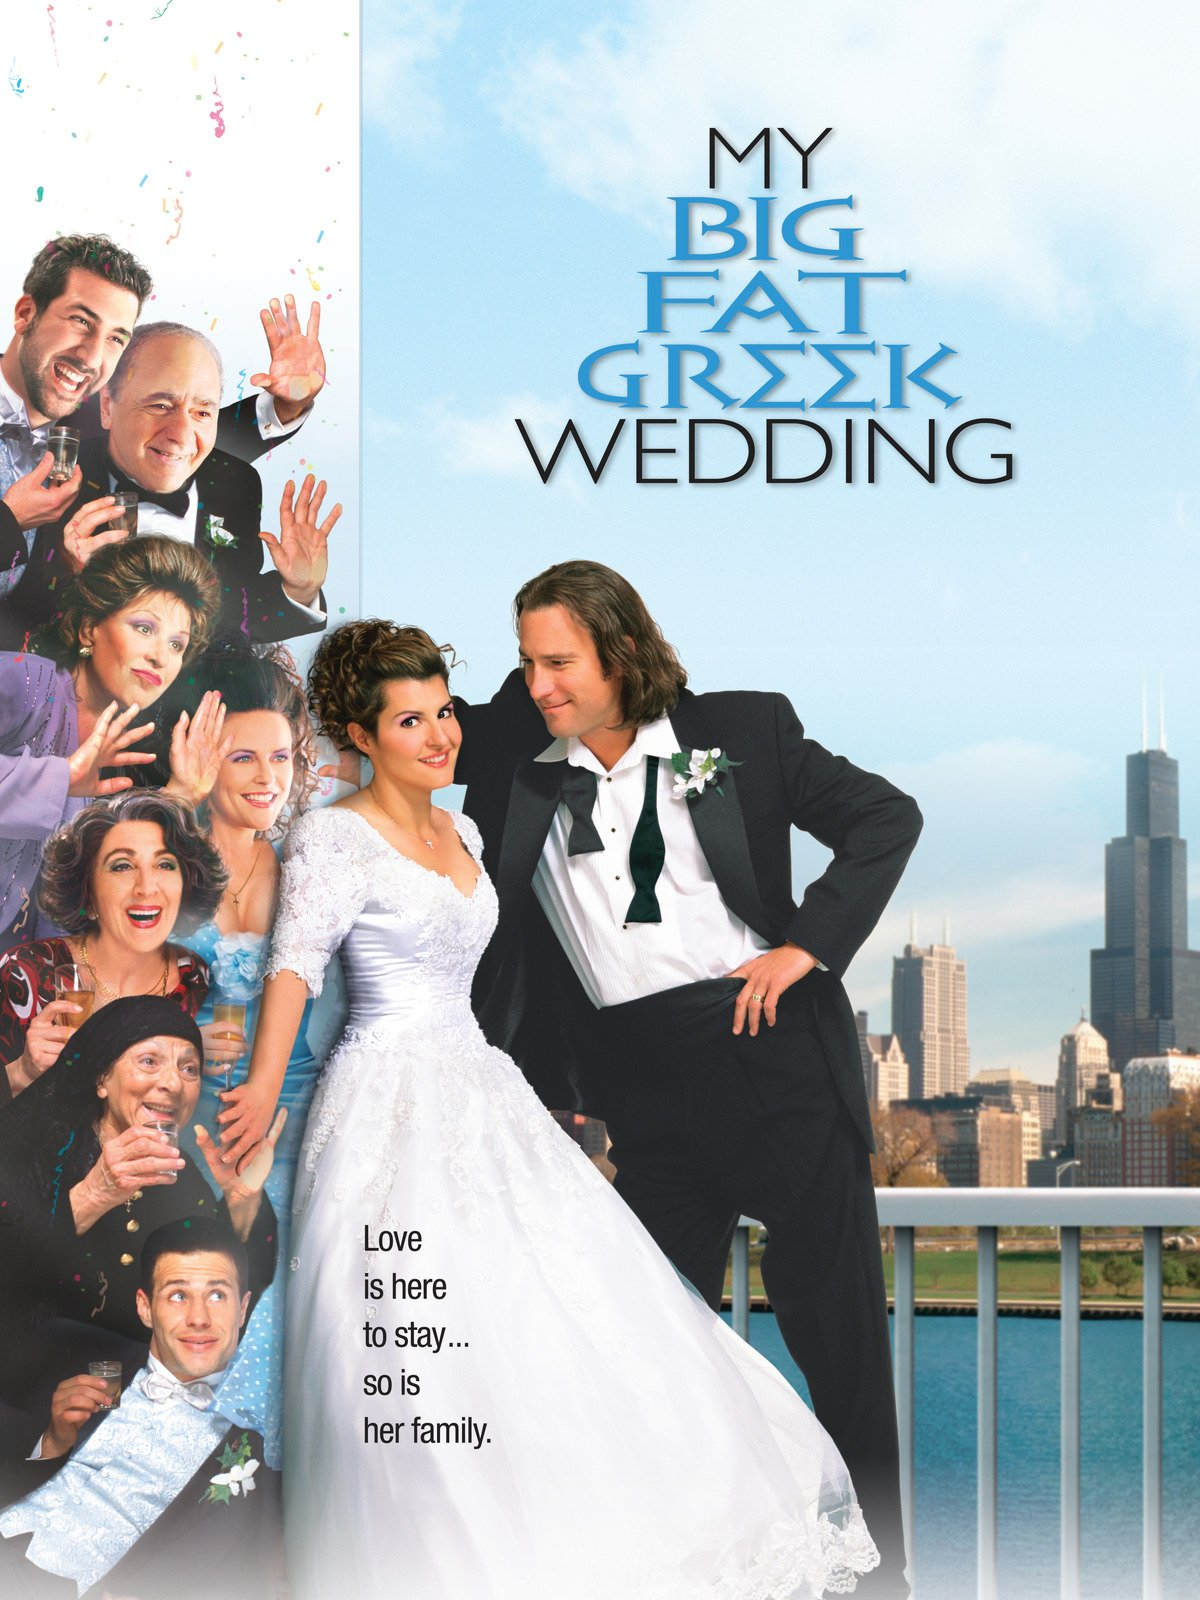 My Big Fat Greek Wedding    - A heartfelt comedy about a plain young Greek-American woman who struggles to break away from her large, loving and highly controlling family, so she can go to college and maybe, just maybe, meet and marry a nice American fellow. Over severe family objections, she stops working at their Greek restaurant, starts to work out (and lose weight), plucks her unruly eyebrows, and generally